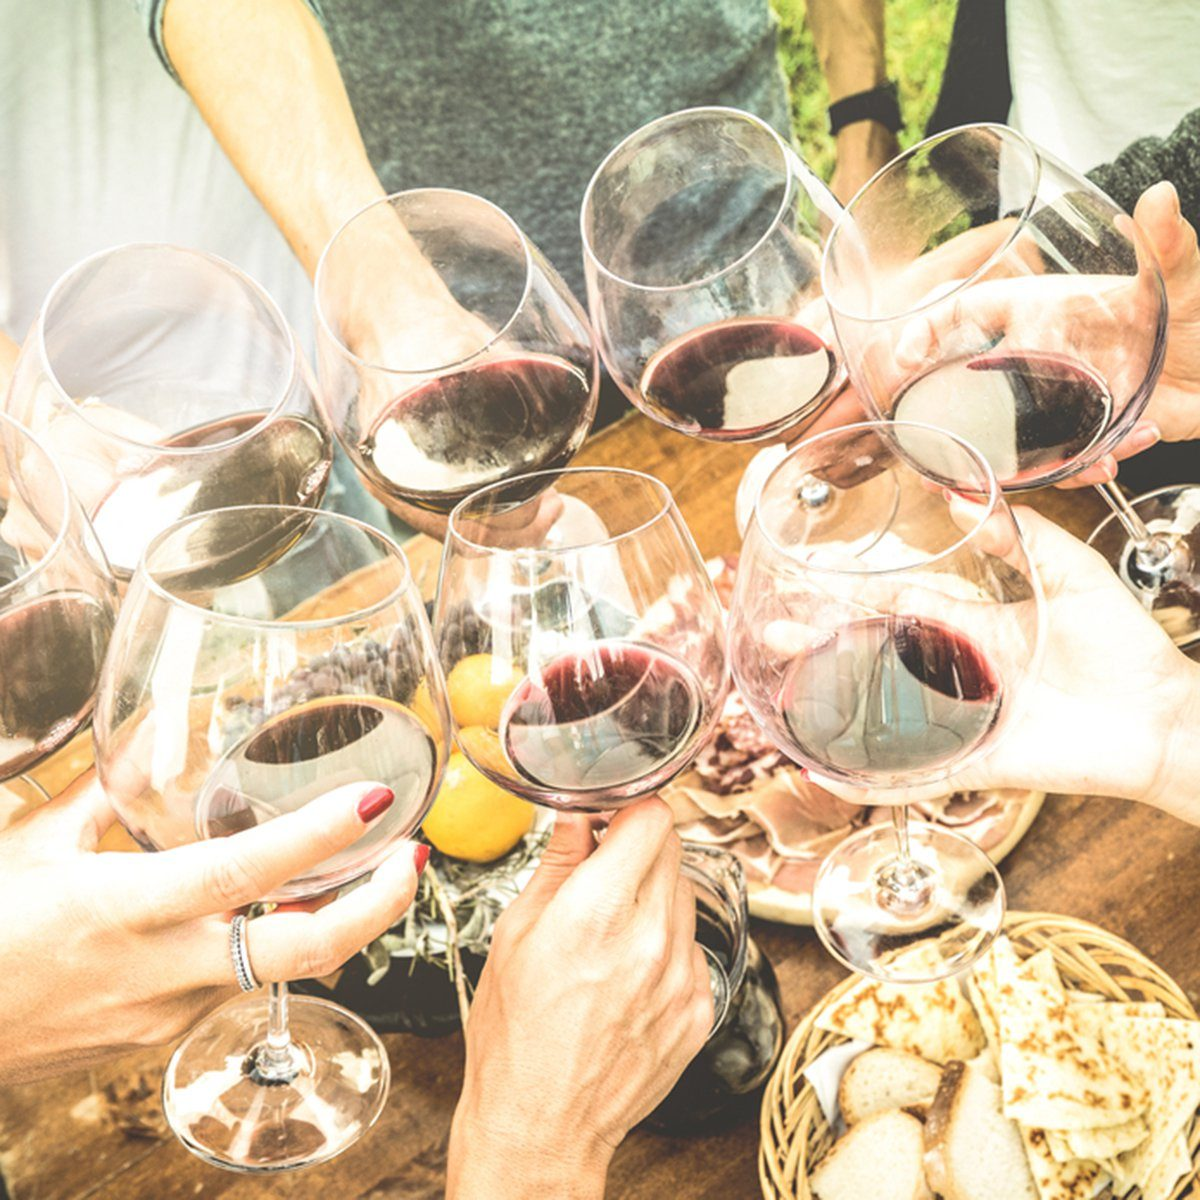 Friends hands toasting red wine glass and having fun outdoors cheering with winetasting - Young people enjoying harvest time together at farmhouse vineyard countryside - Youth and friendship concept; Shutterstock ID 570070135